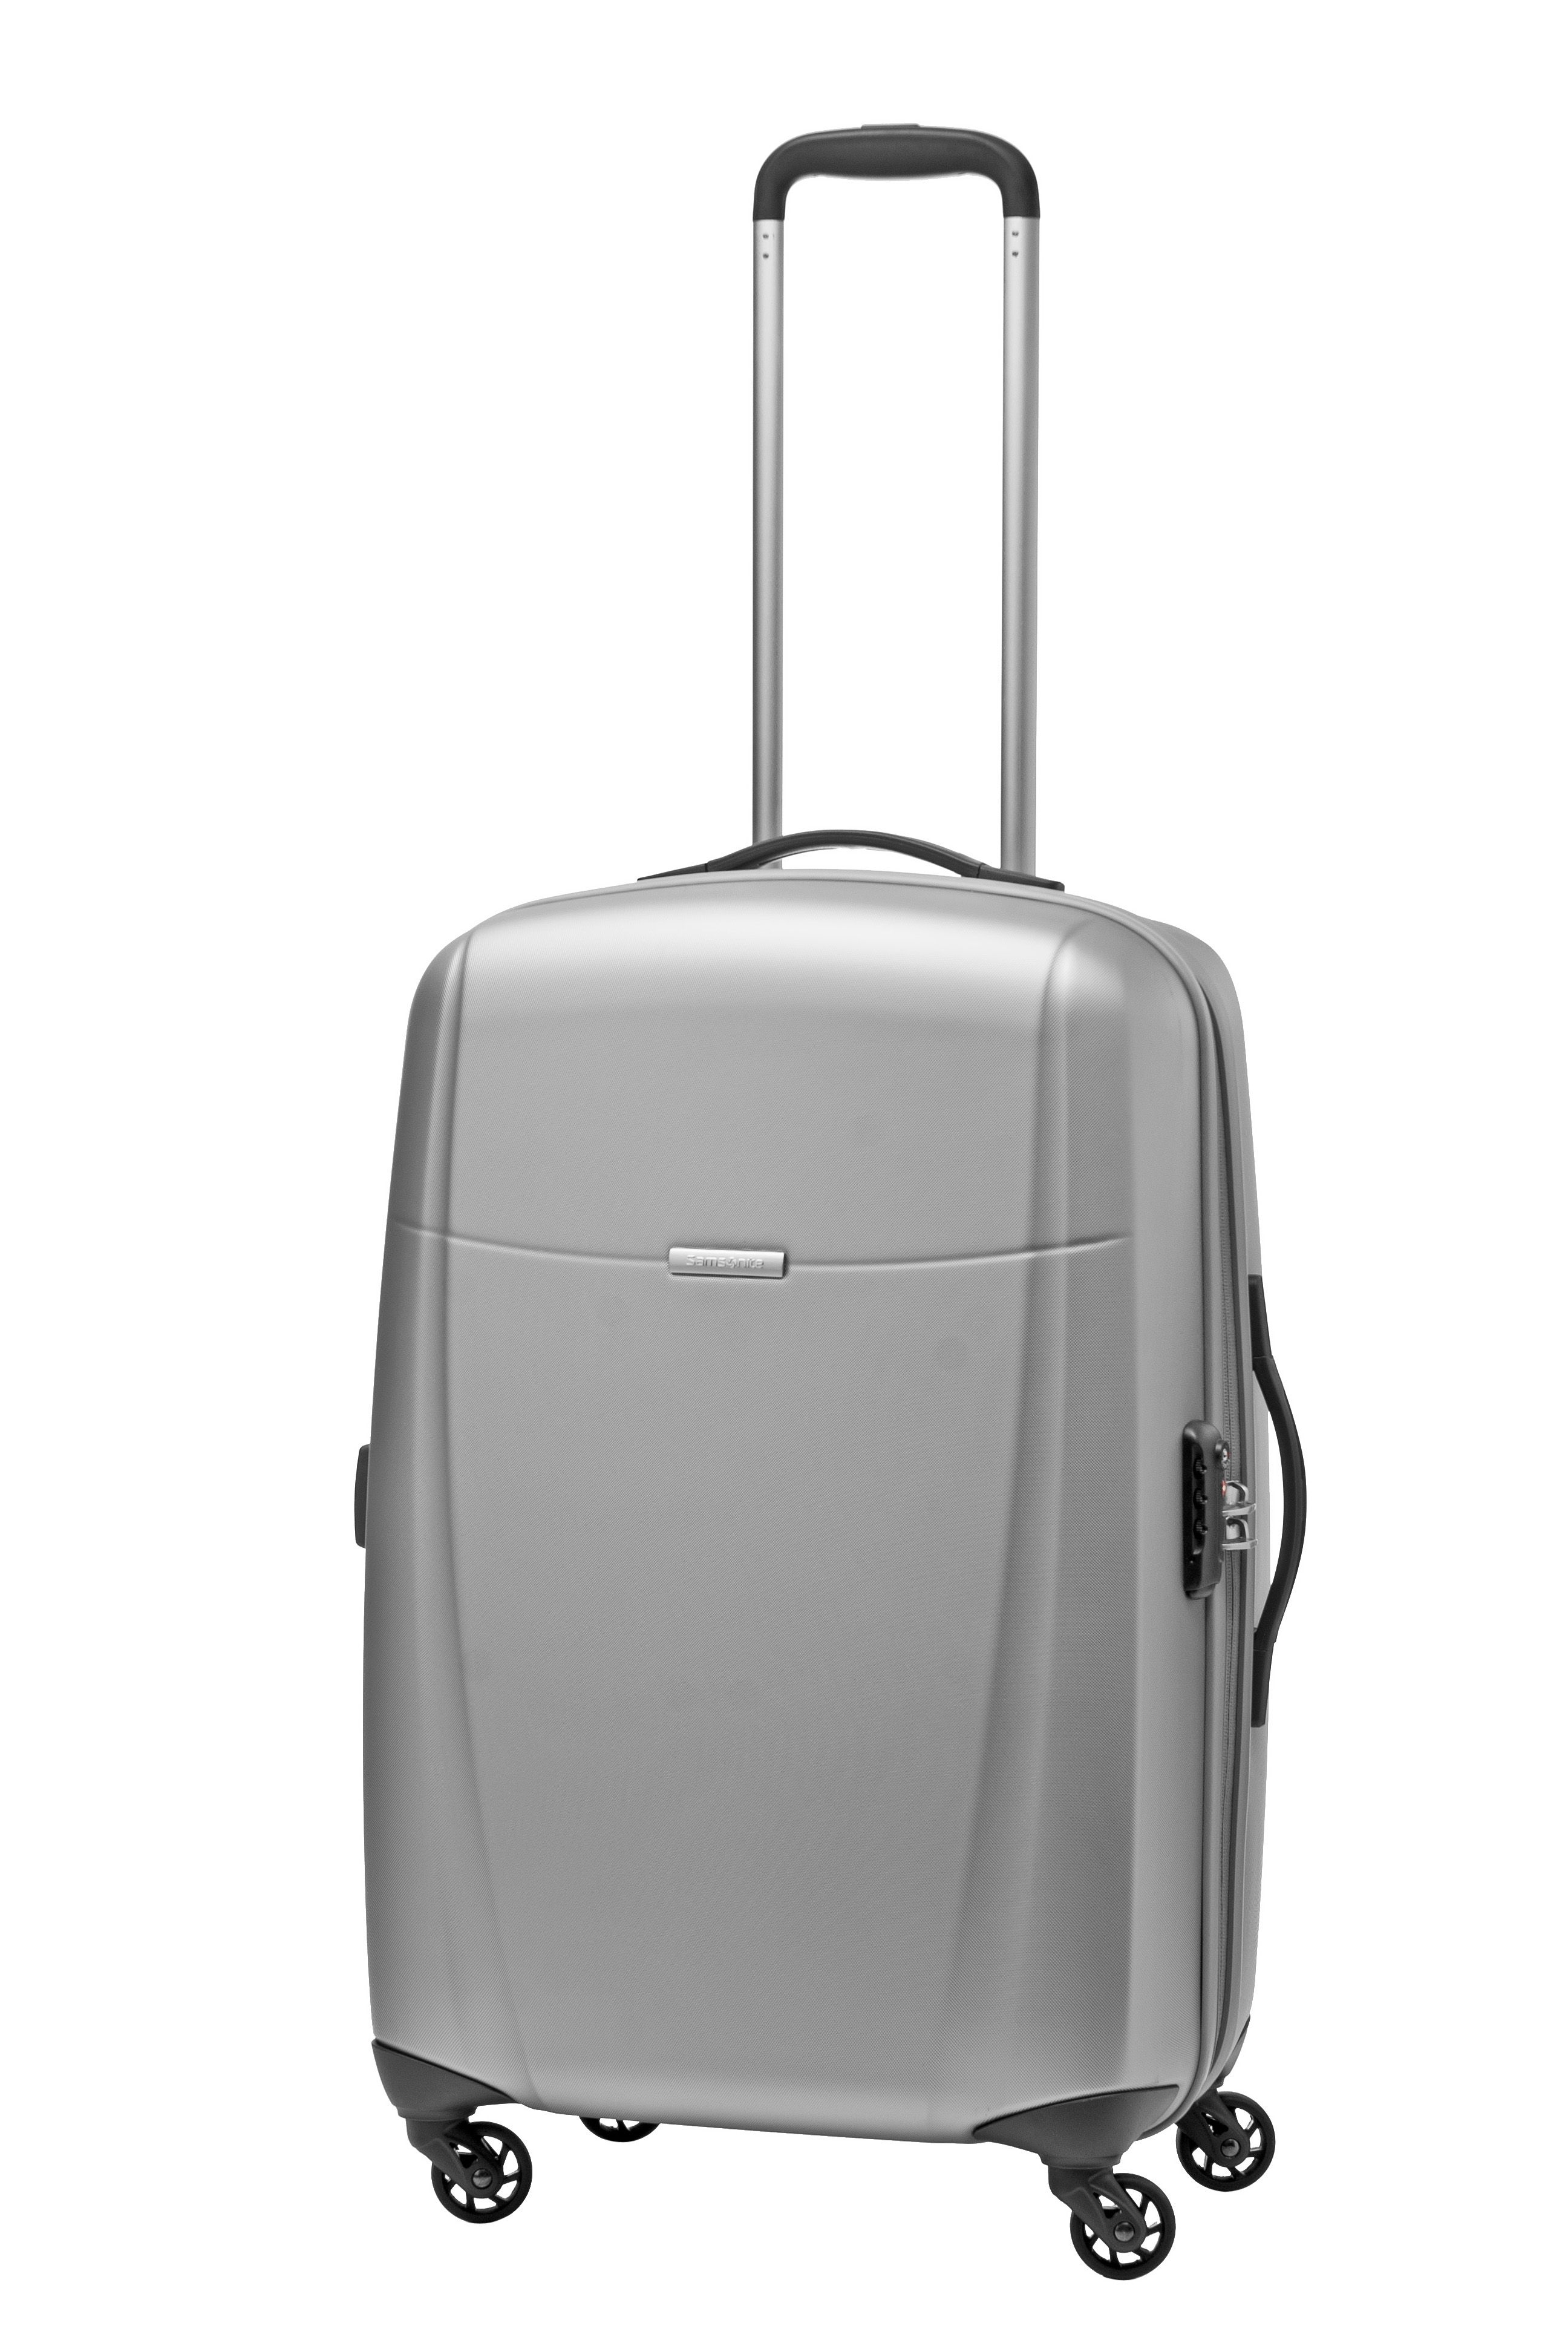 Bright Lite 2.0 Silver 67cm #Samsonite #BrightLite20 #Travel ...